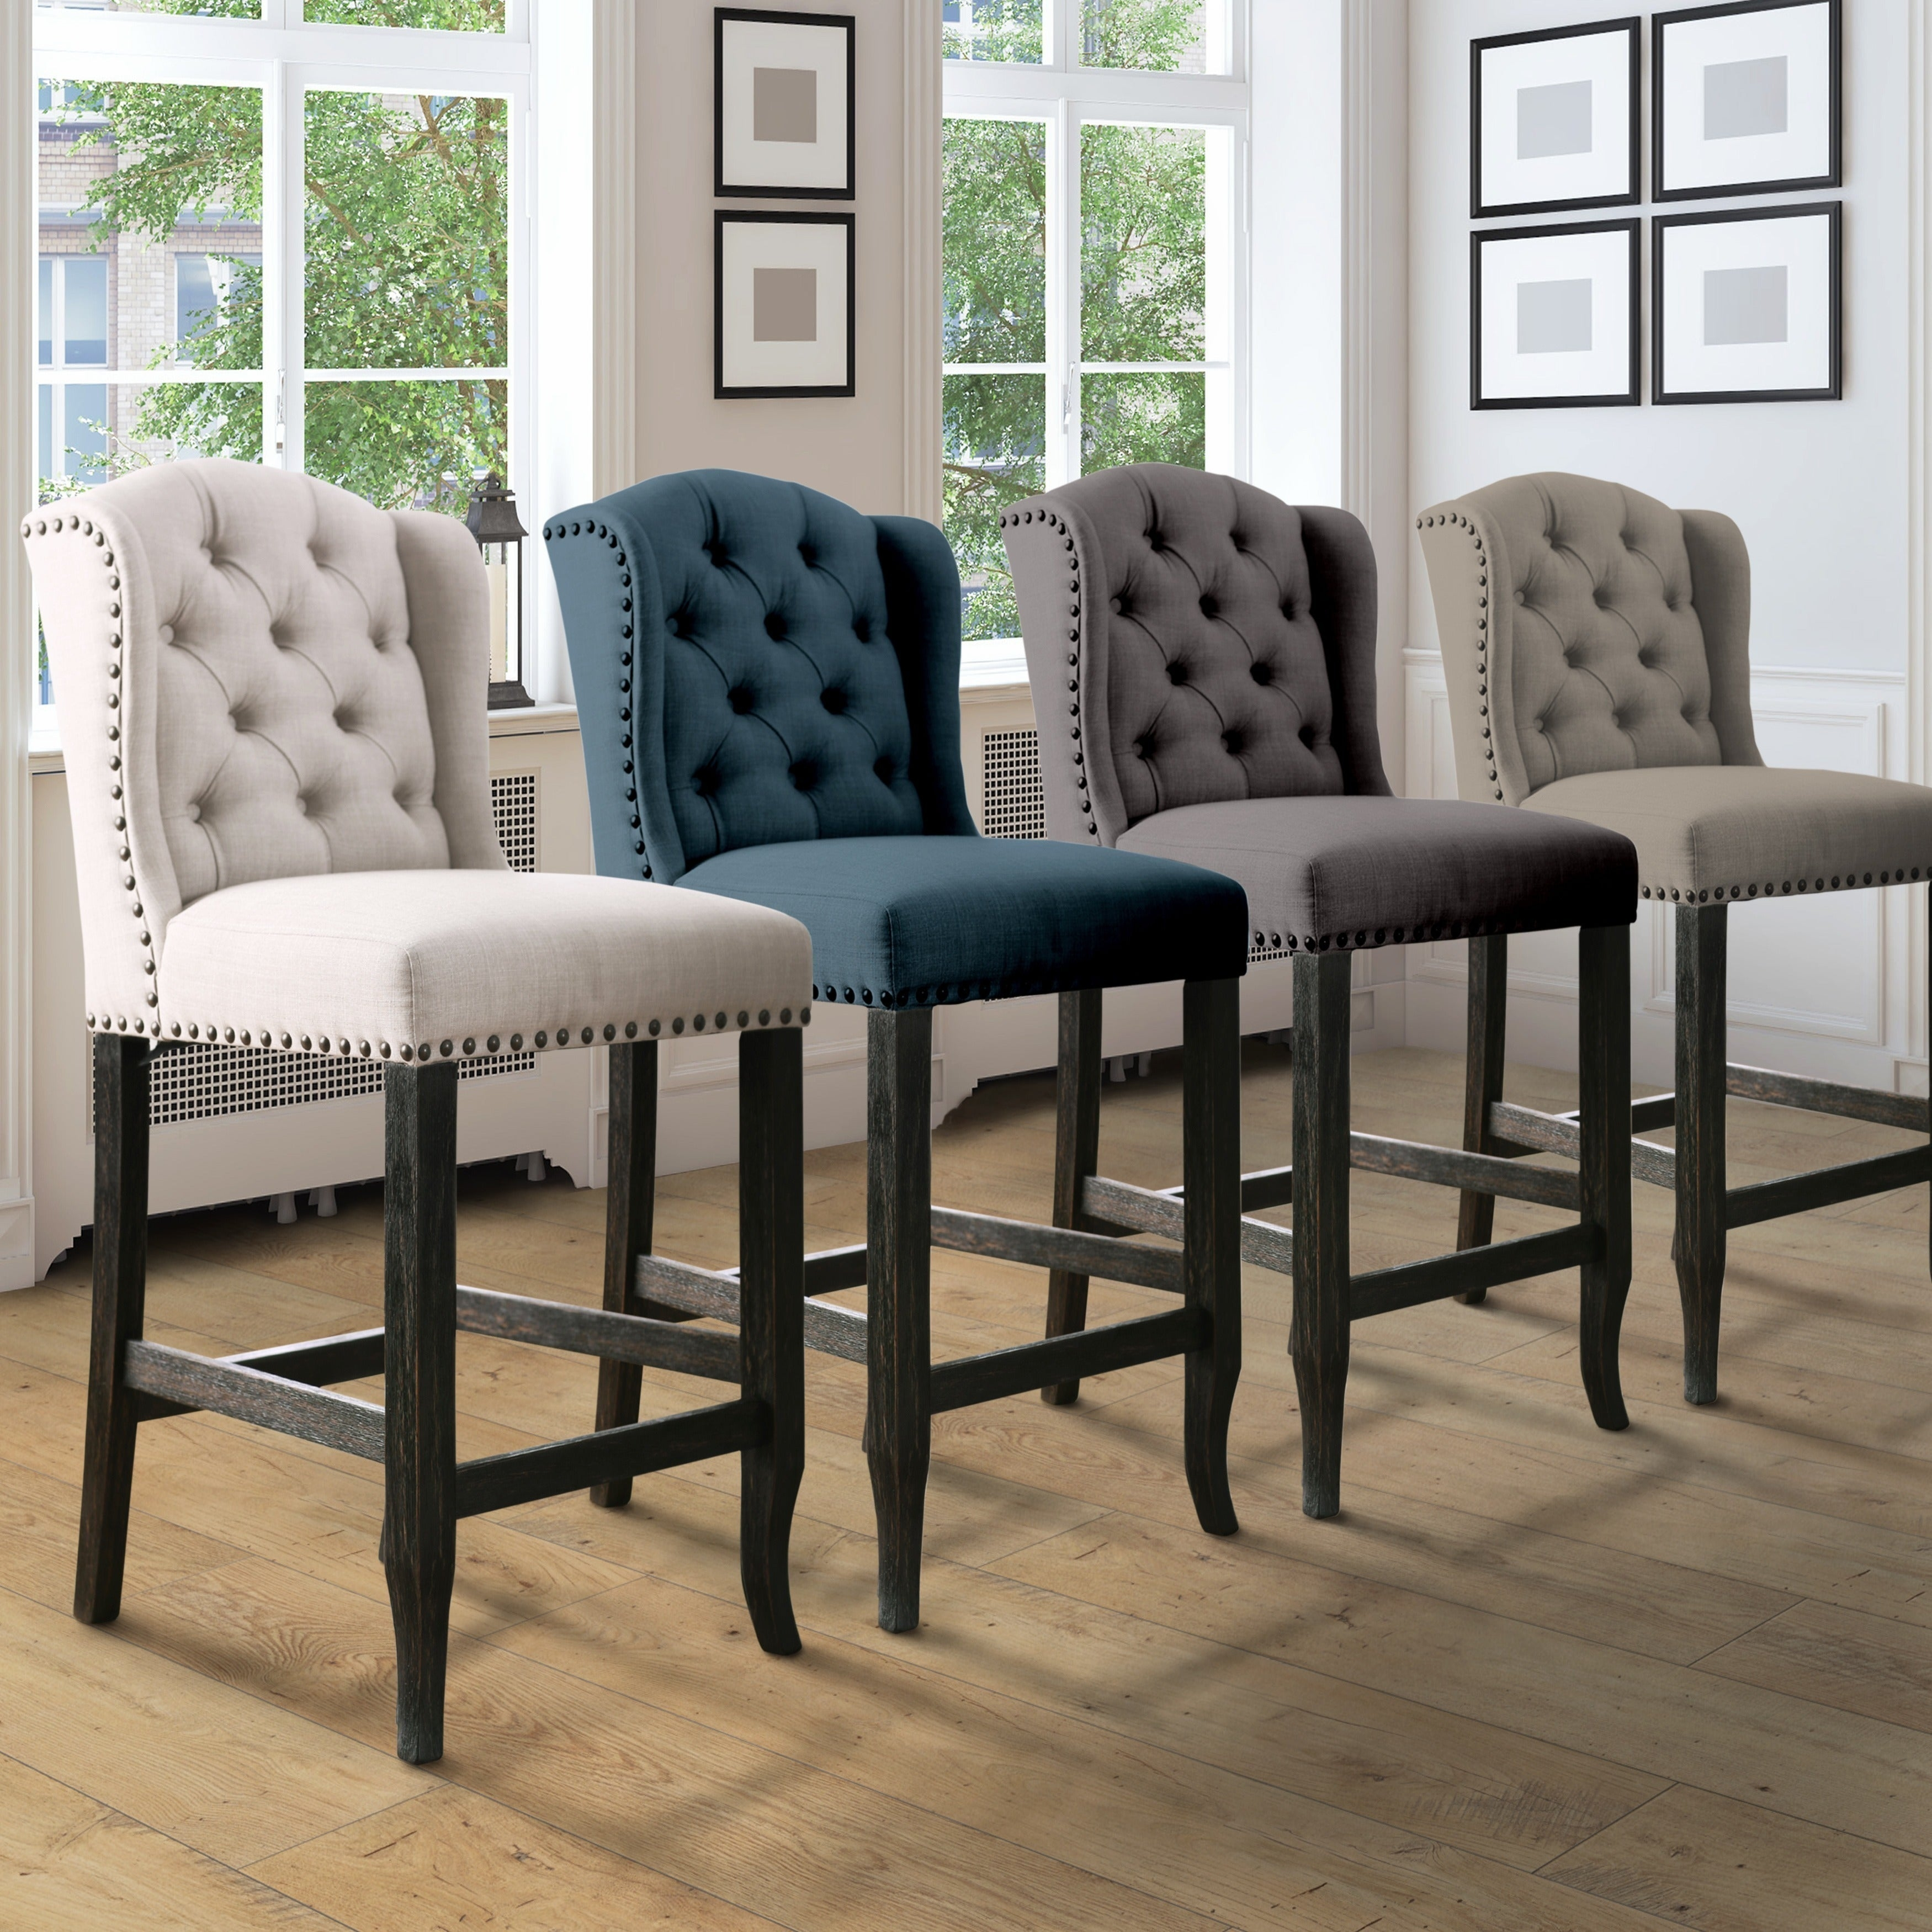 telara contemporary tufted wingback 24 inch counter height chair set of 2 foa